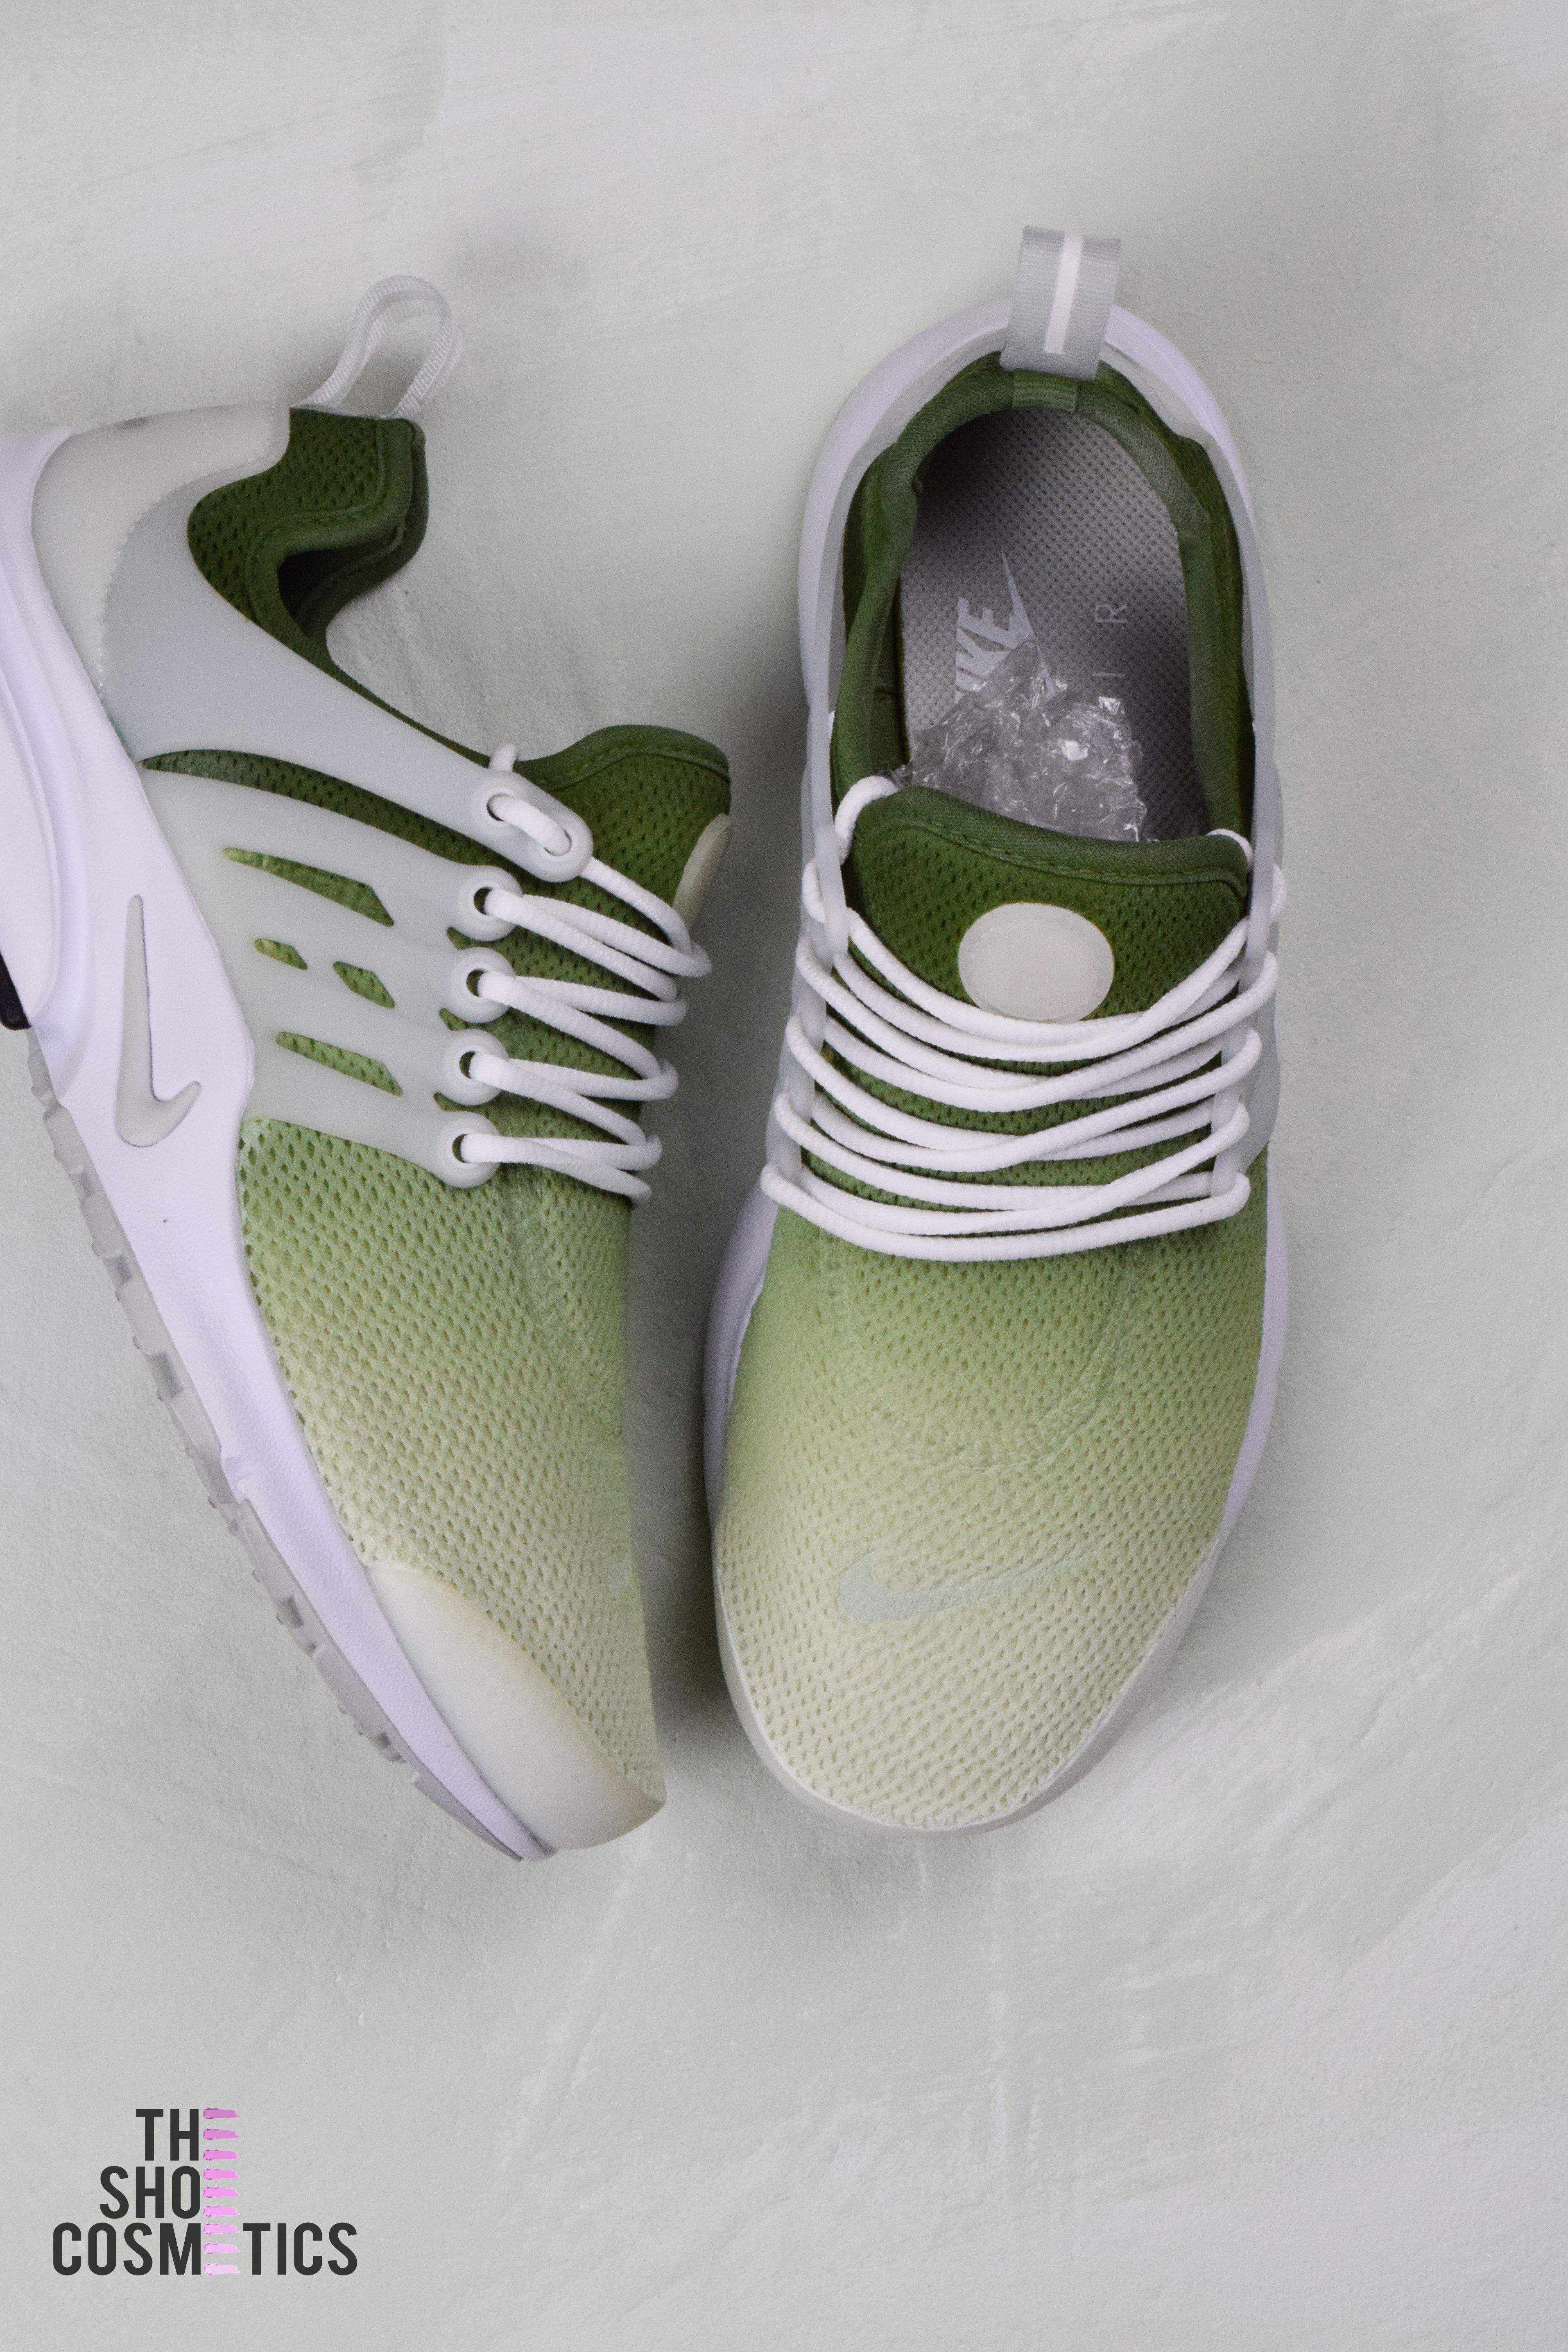 af54c5f3a772 Explore our olive green ombre Air presto custom nike sneakers. Looking for  green Nike shoes or womens Nike sneakers  Then our hand painted ombre  sneaker ...